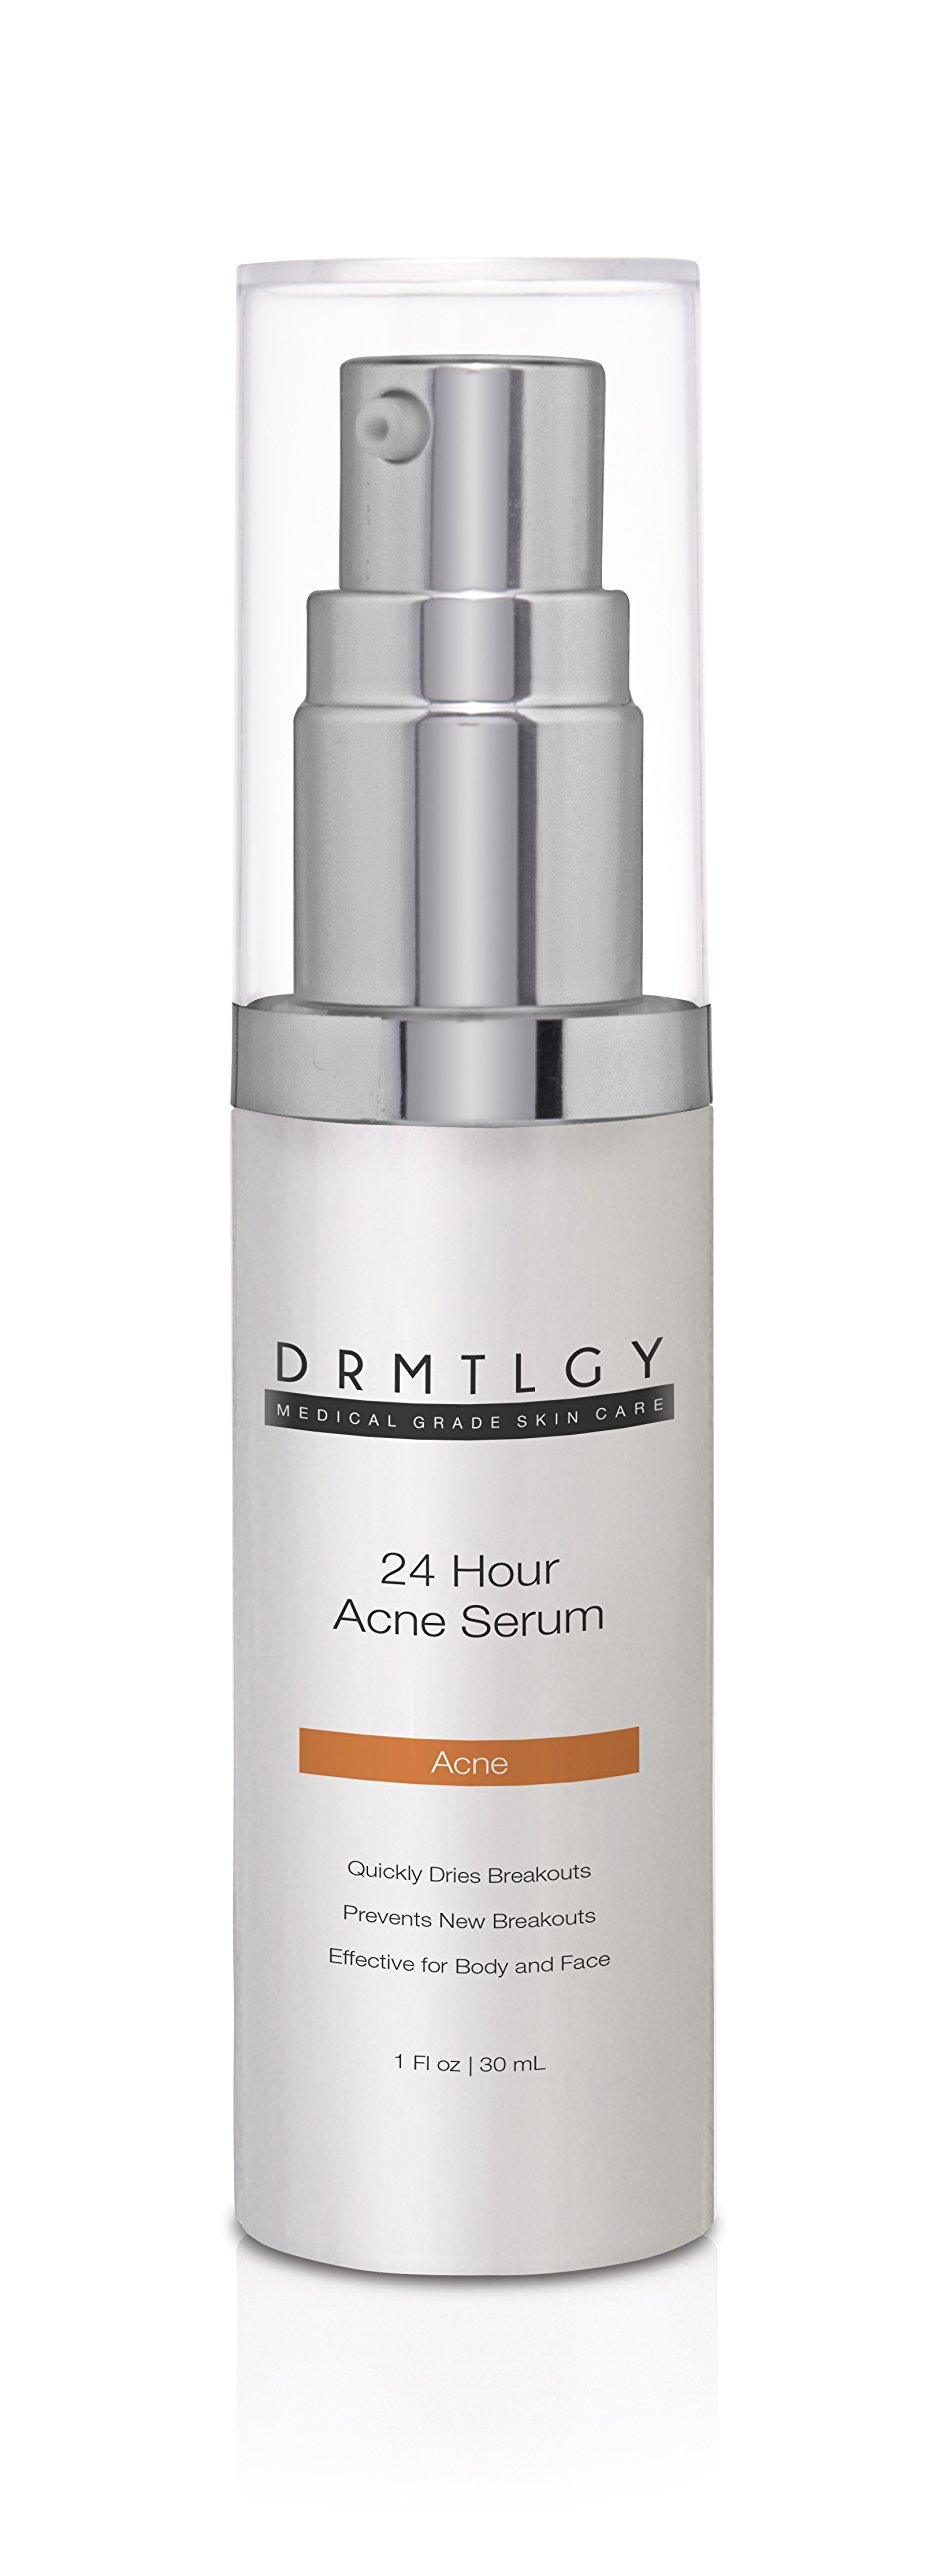 DRMTLGY Powerful Acne Treatment Serum. Micronized Benzoyl Peroxide 5 and Glycolic Acid Fight Acne on the Spot. Eliminate Acne Breakouts, Cystic Acne and Reduce Acne Scarring.